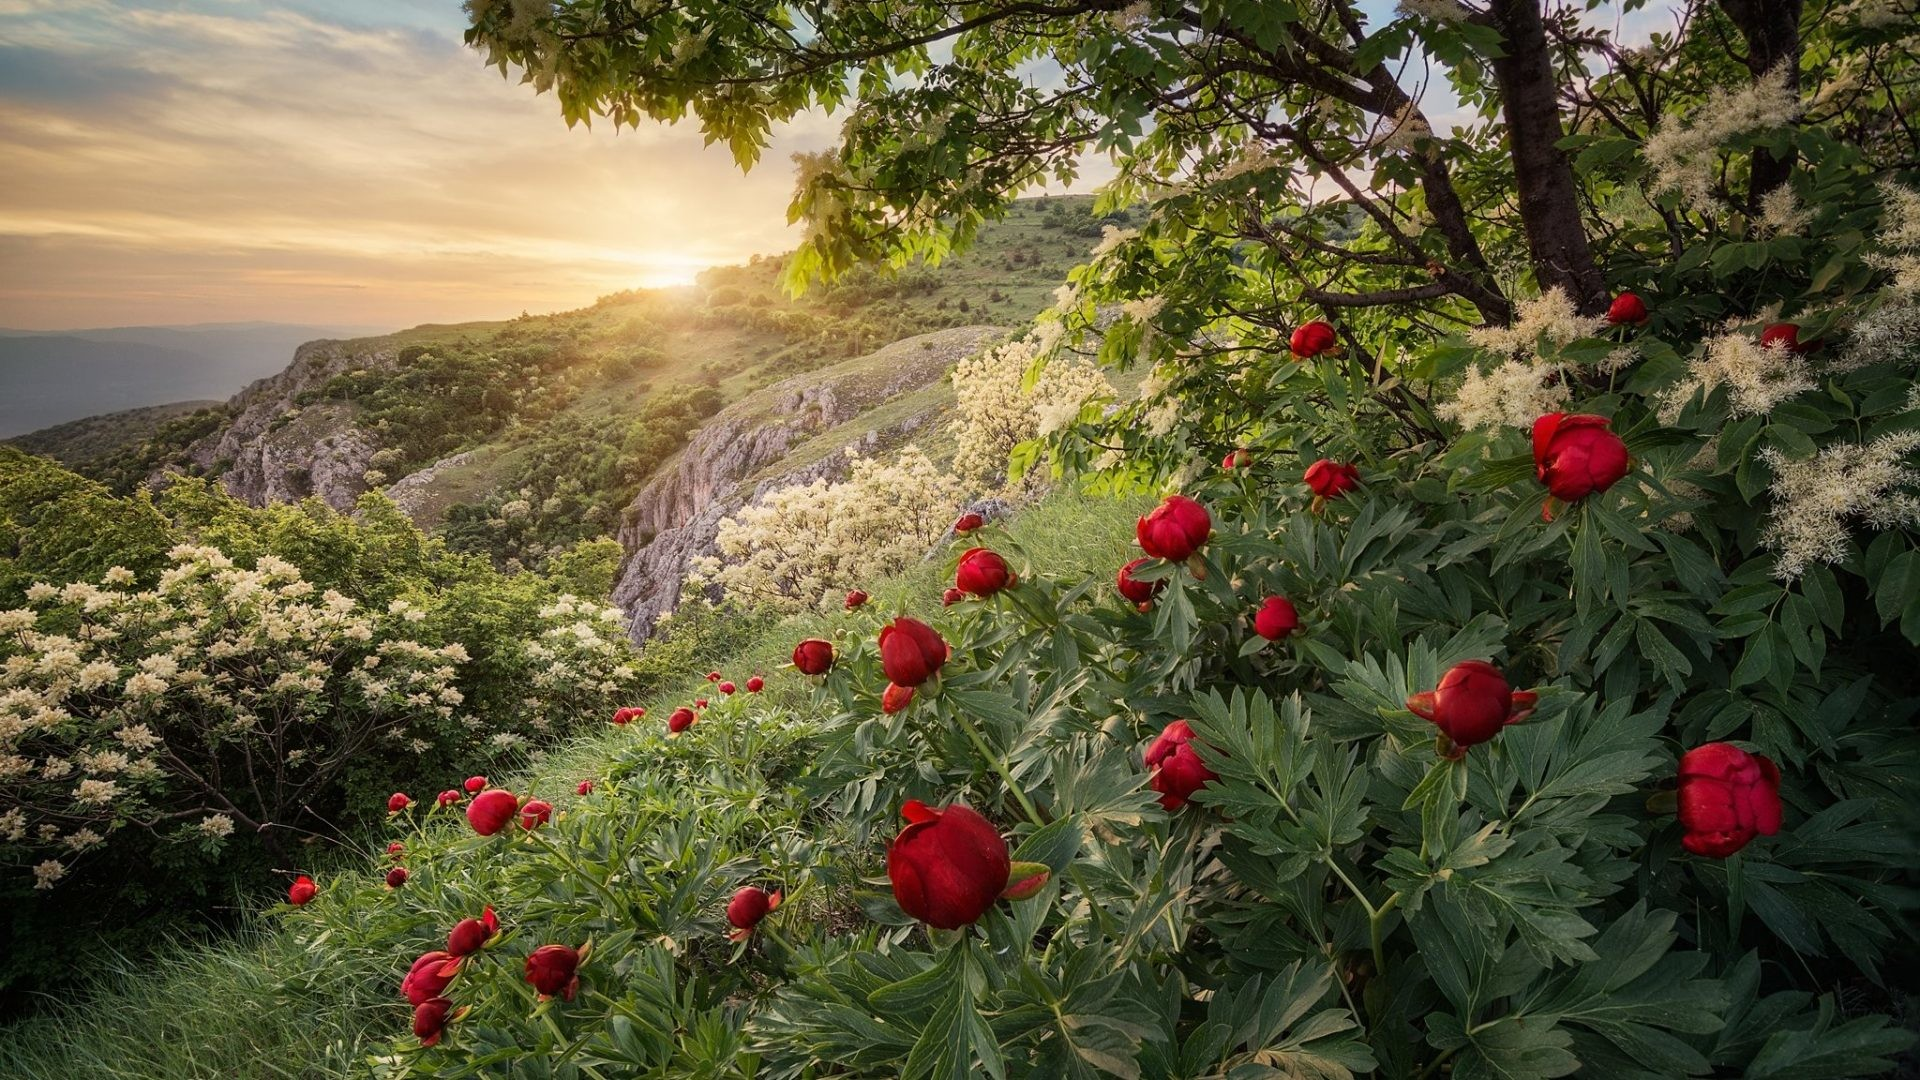 Spring Tag – Sunset Mountain Forest Bulgaria Spring Peony Hd Nature Images  For Android Phone for